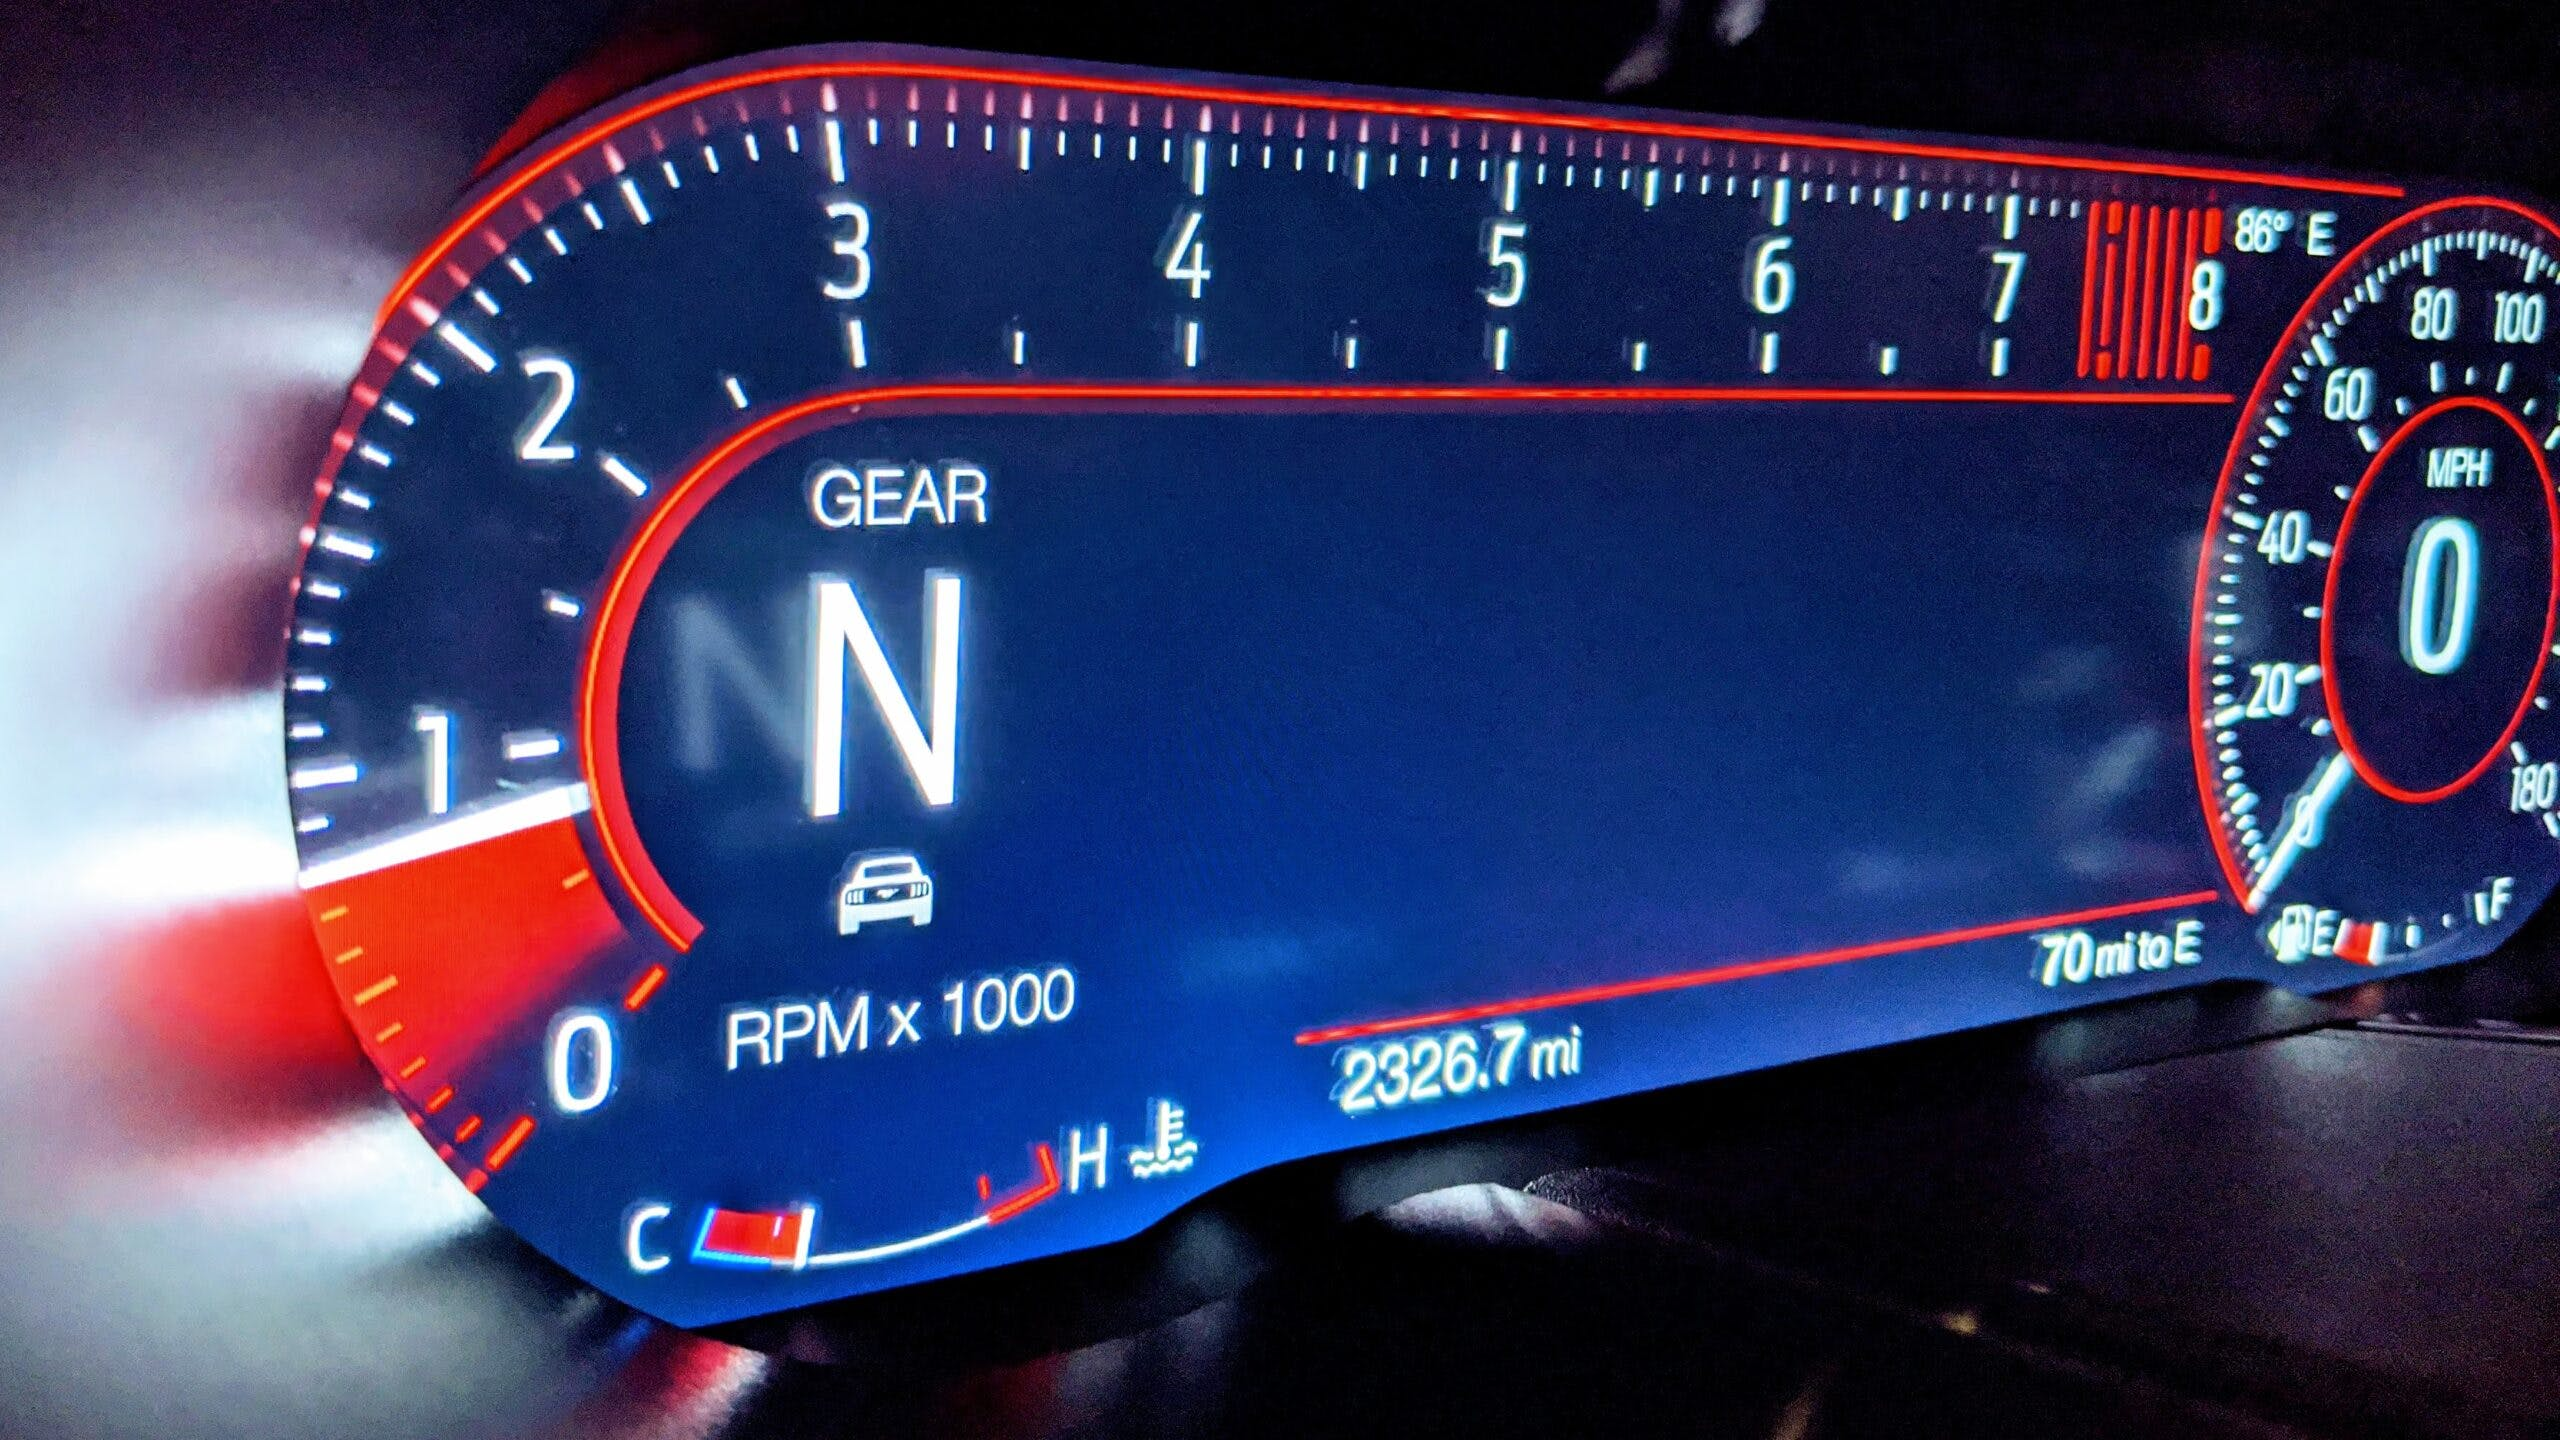 Tachometer Showing RPM in a Ford Mustang